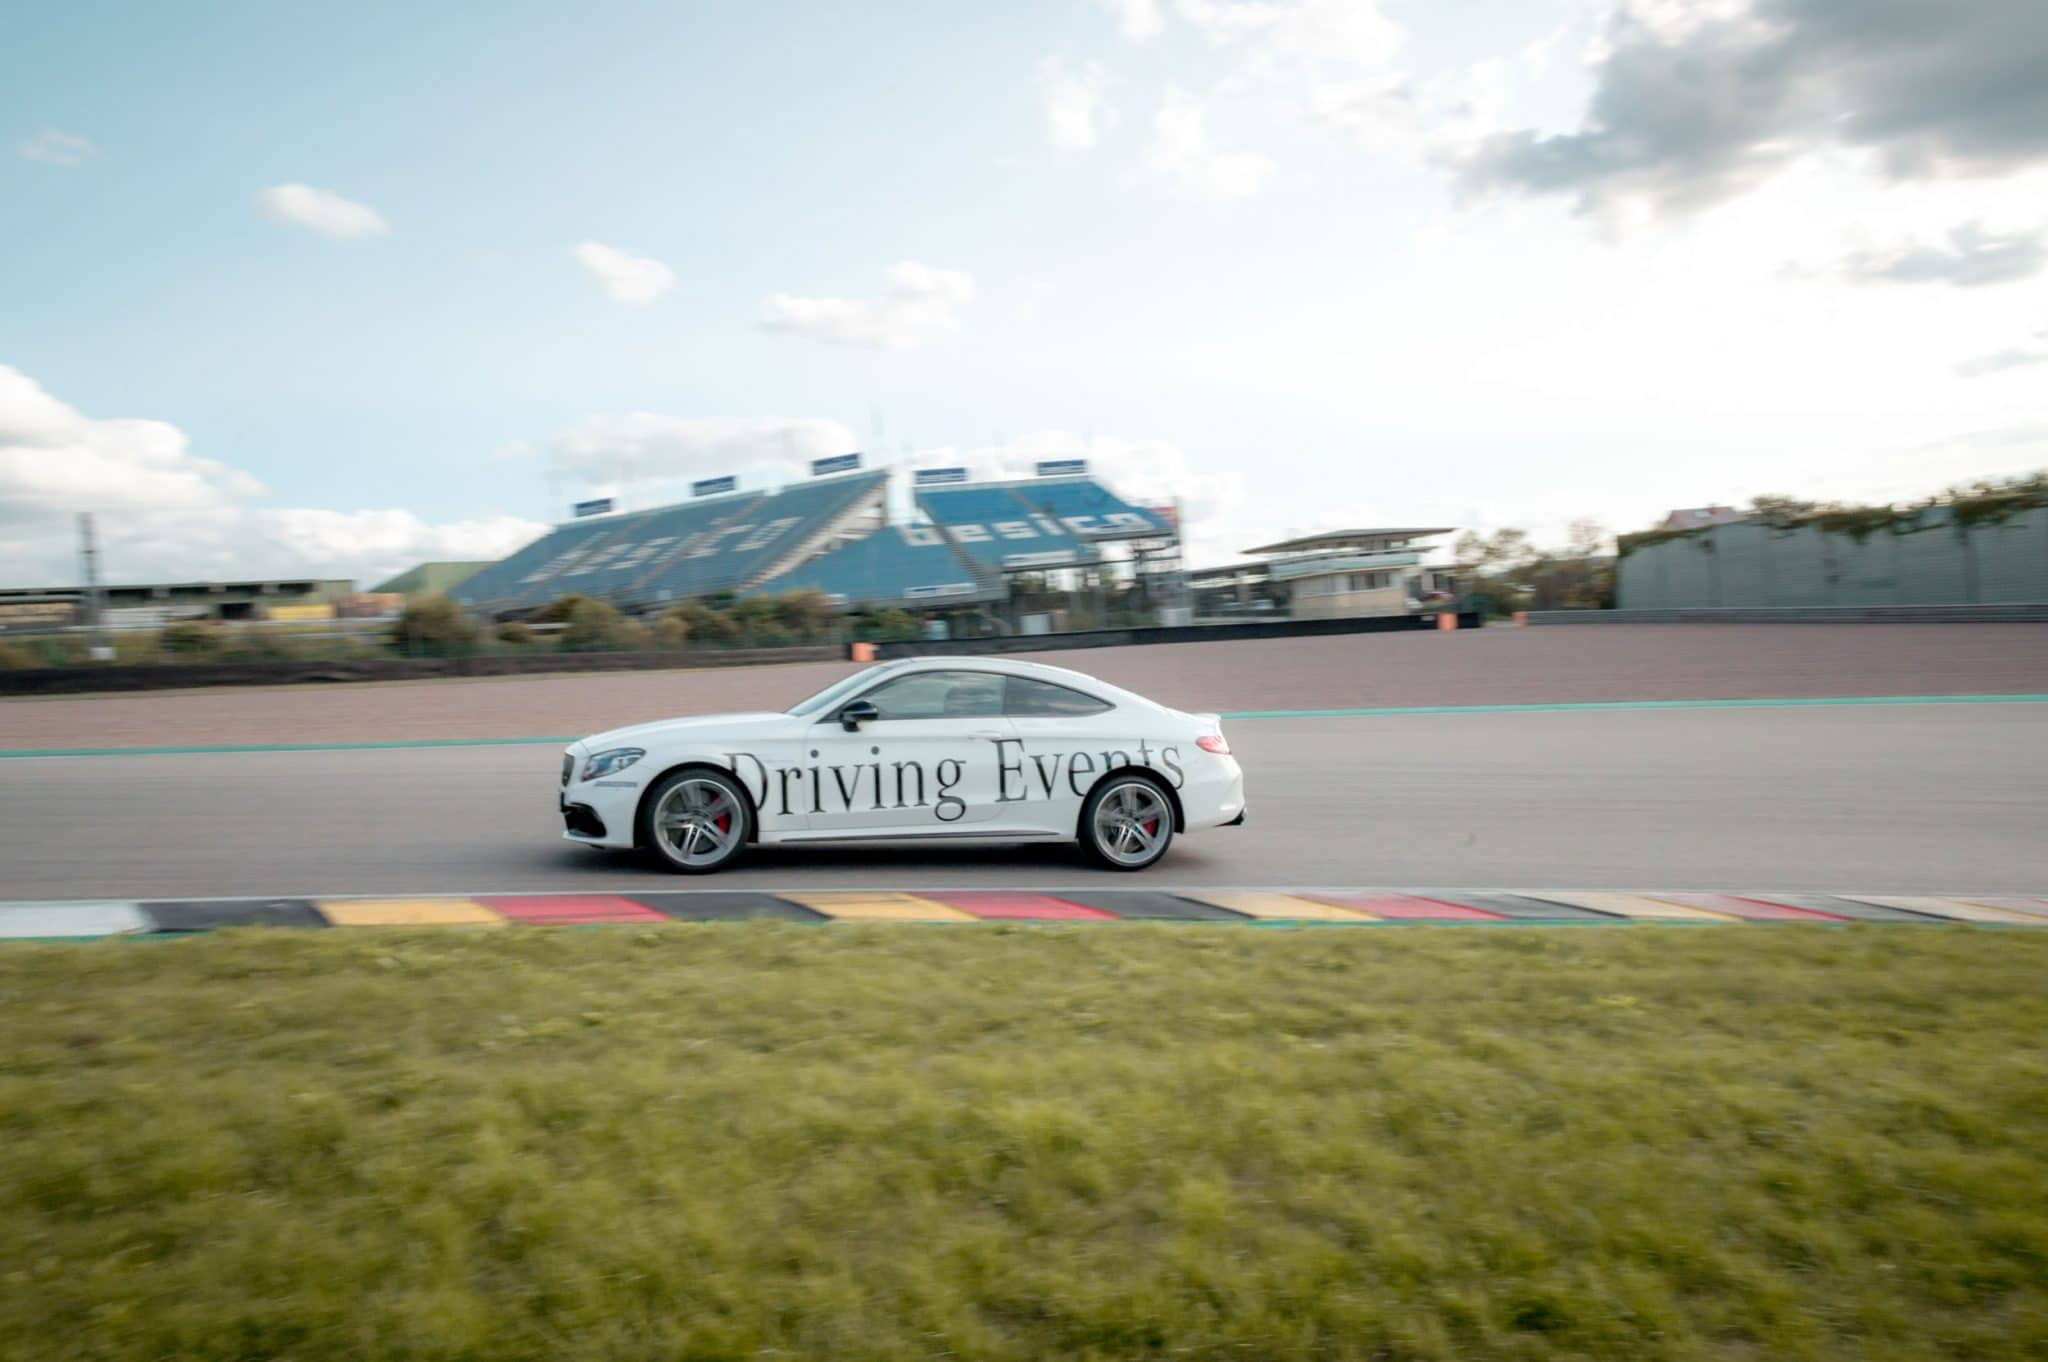 Mercedes Benz Driving Events Sachsenring 11. September 2020 523 scaled |